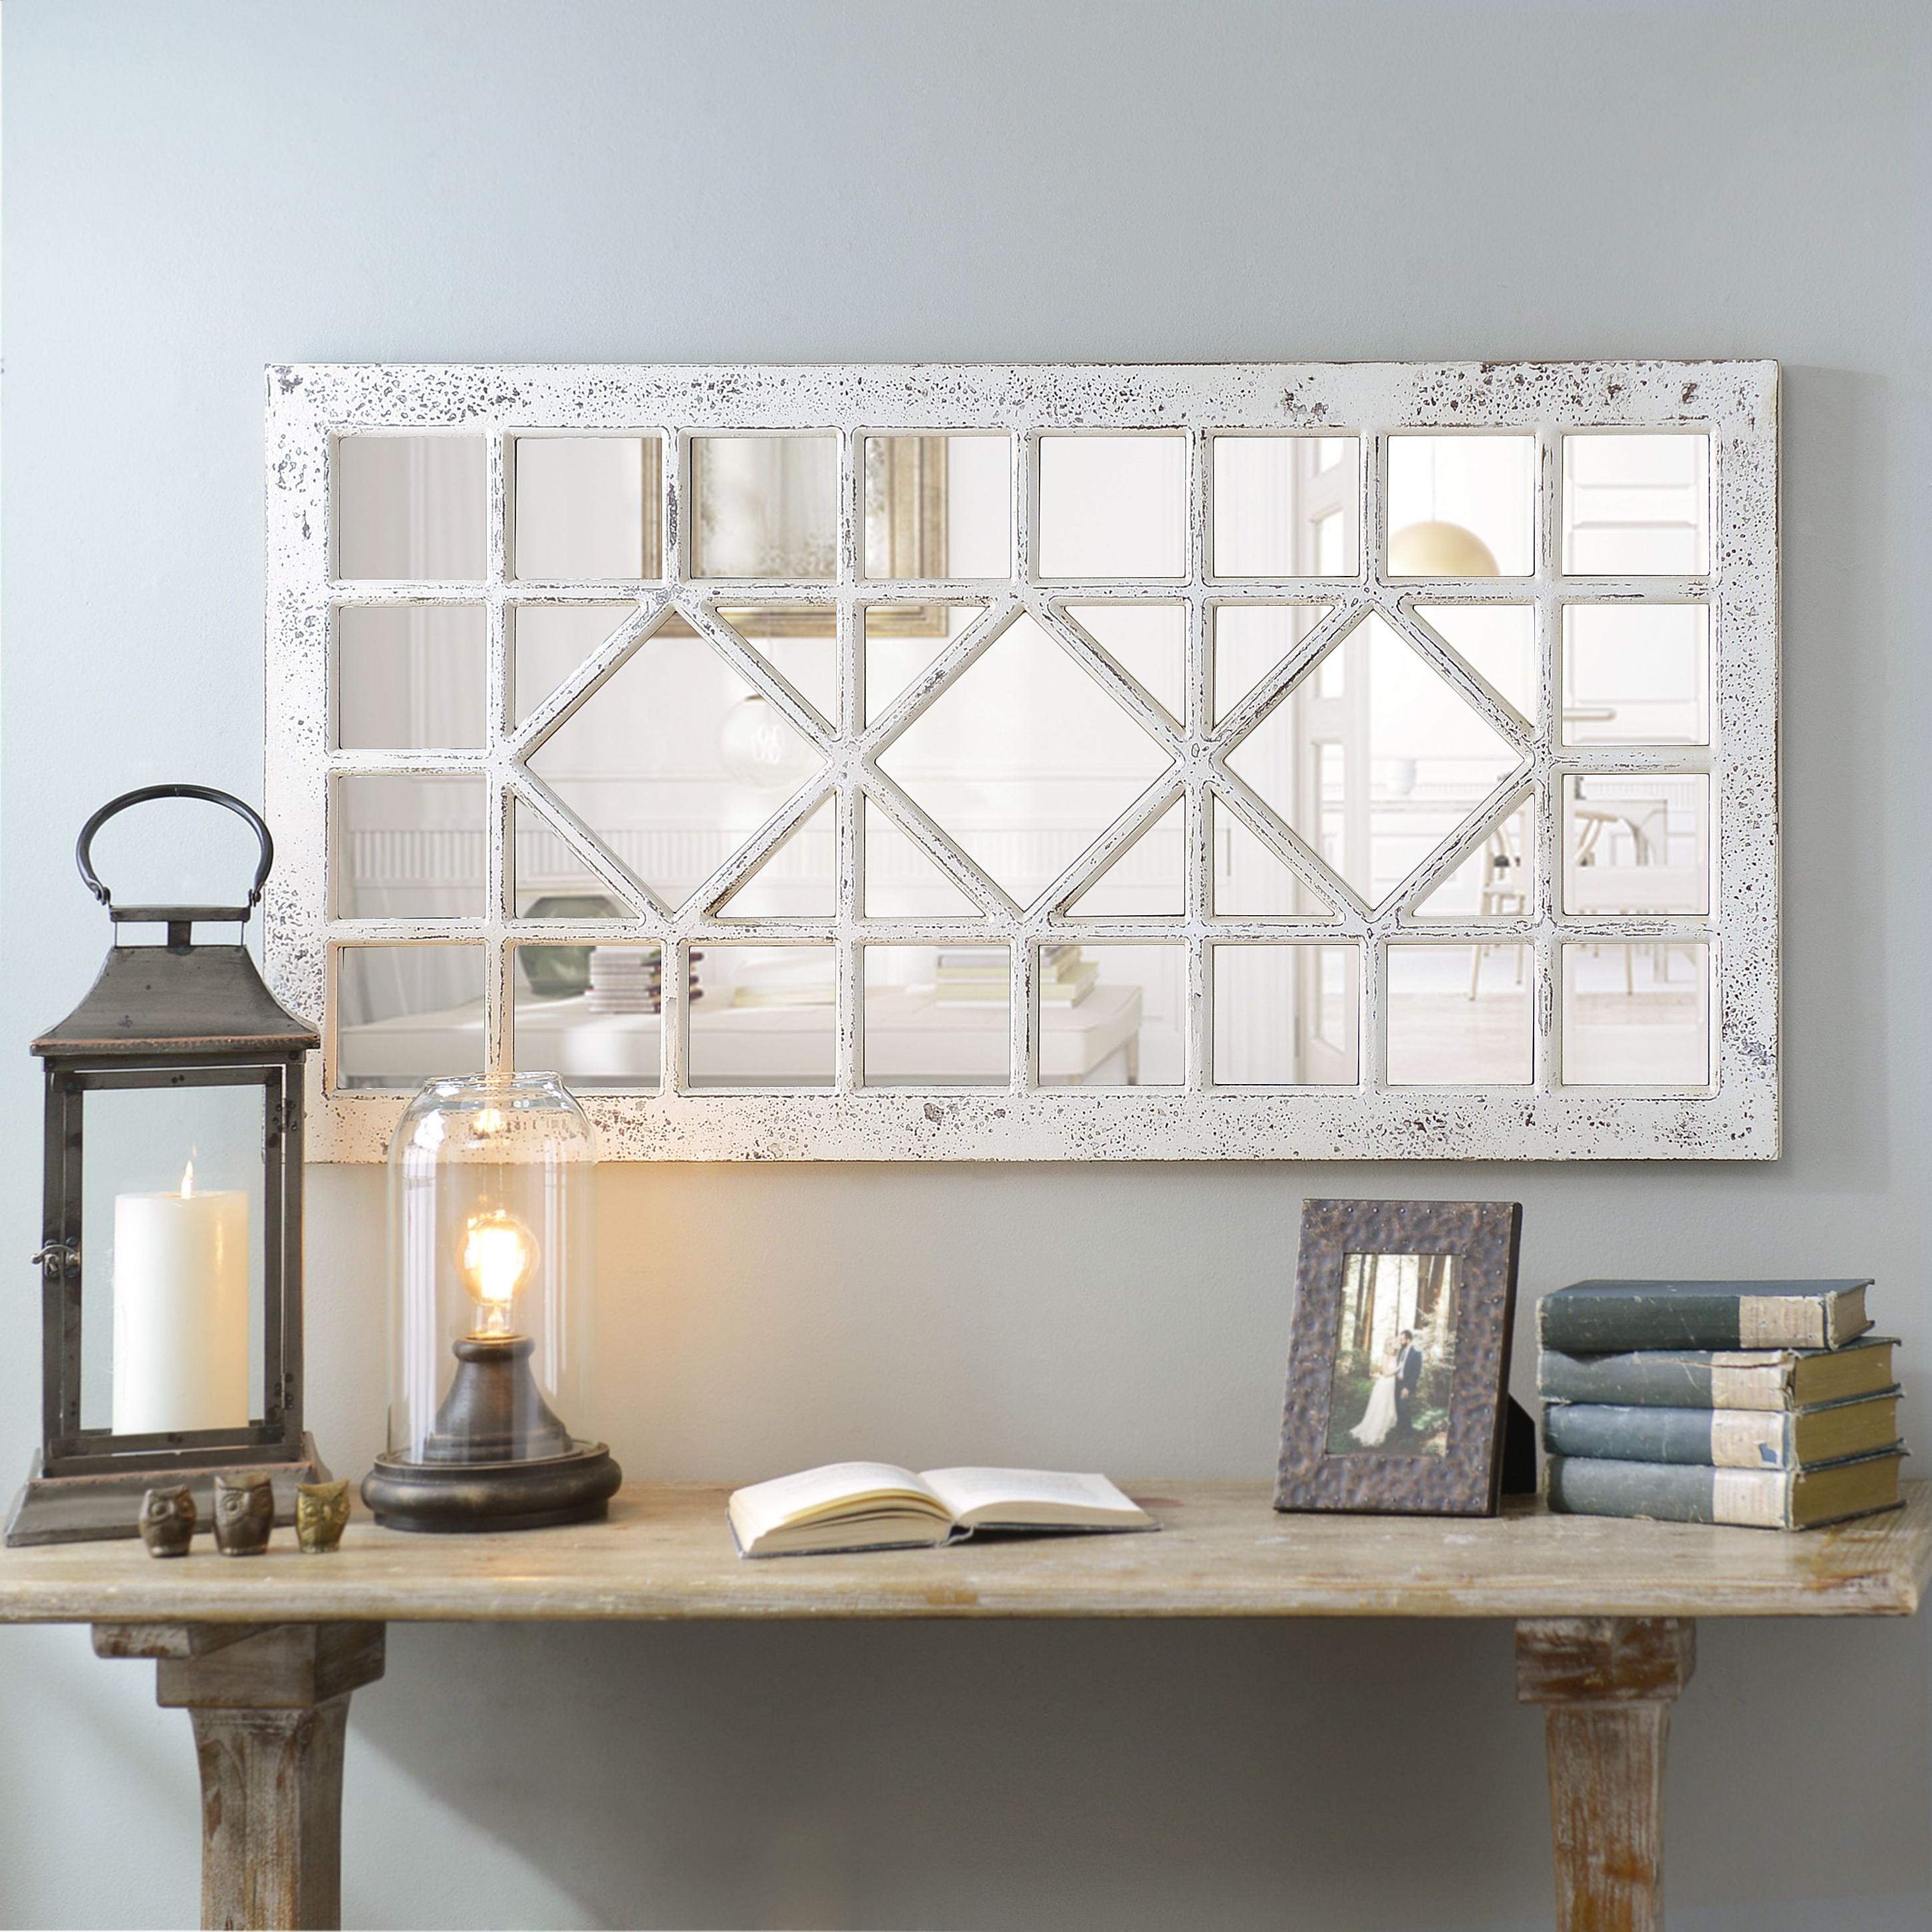 Newest Product Details Distressed Cream Marquis Pane Mirror (View 5 of 20)